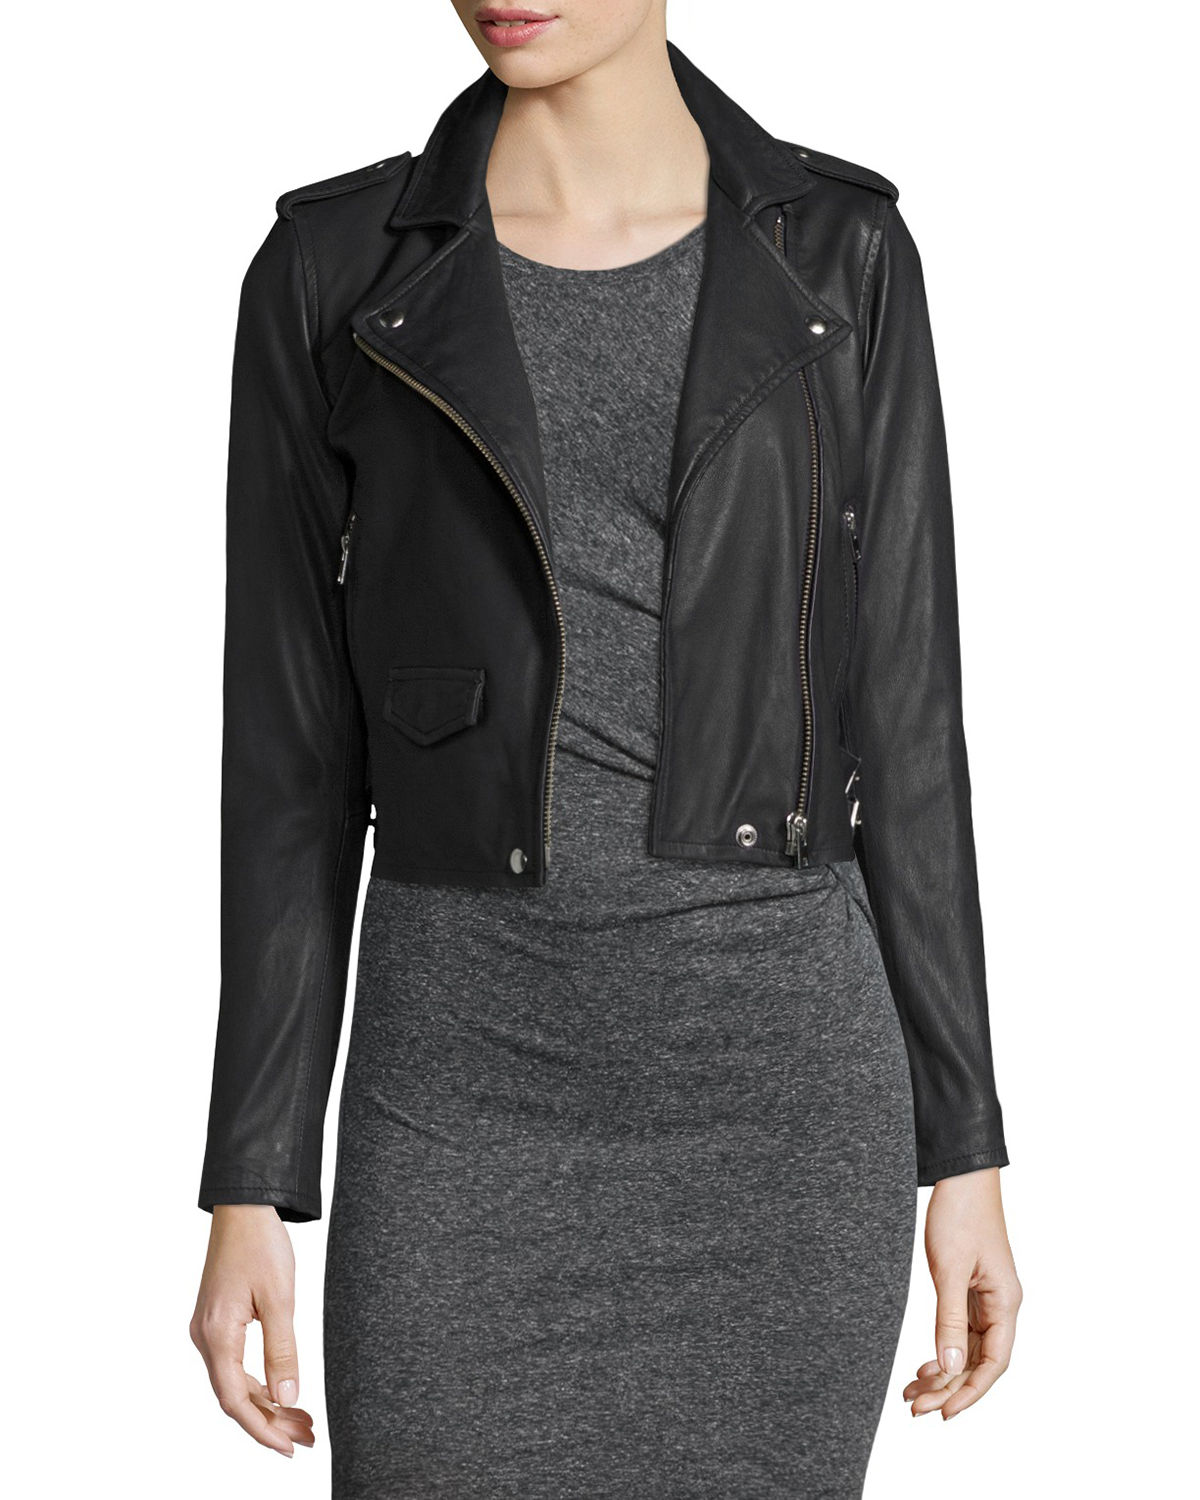 Iro Ashville Cropped Leather Jacket | Neiman Marcus